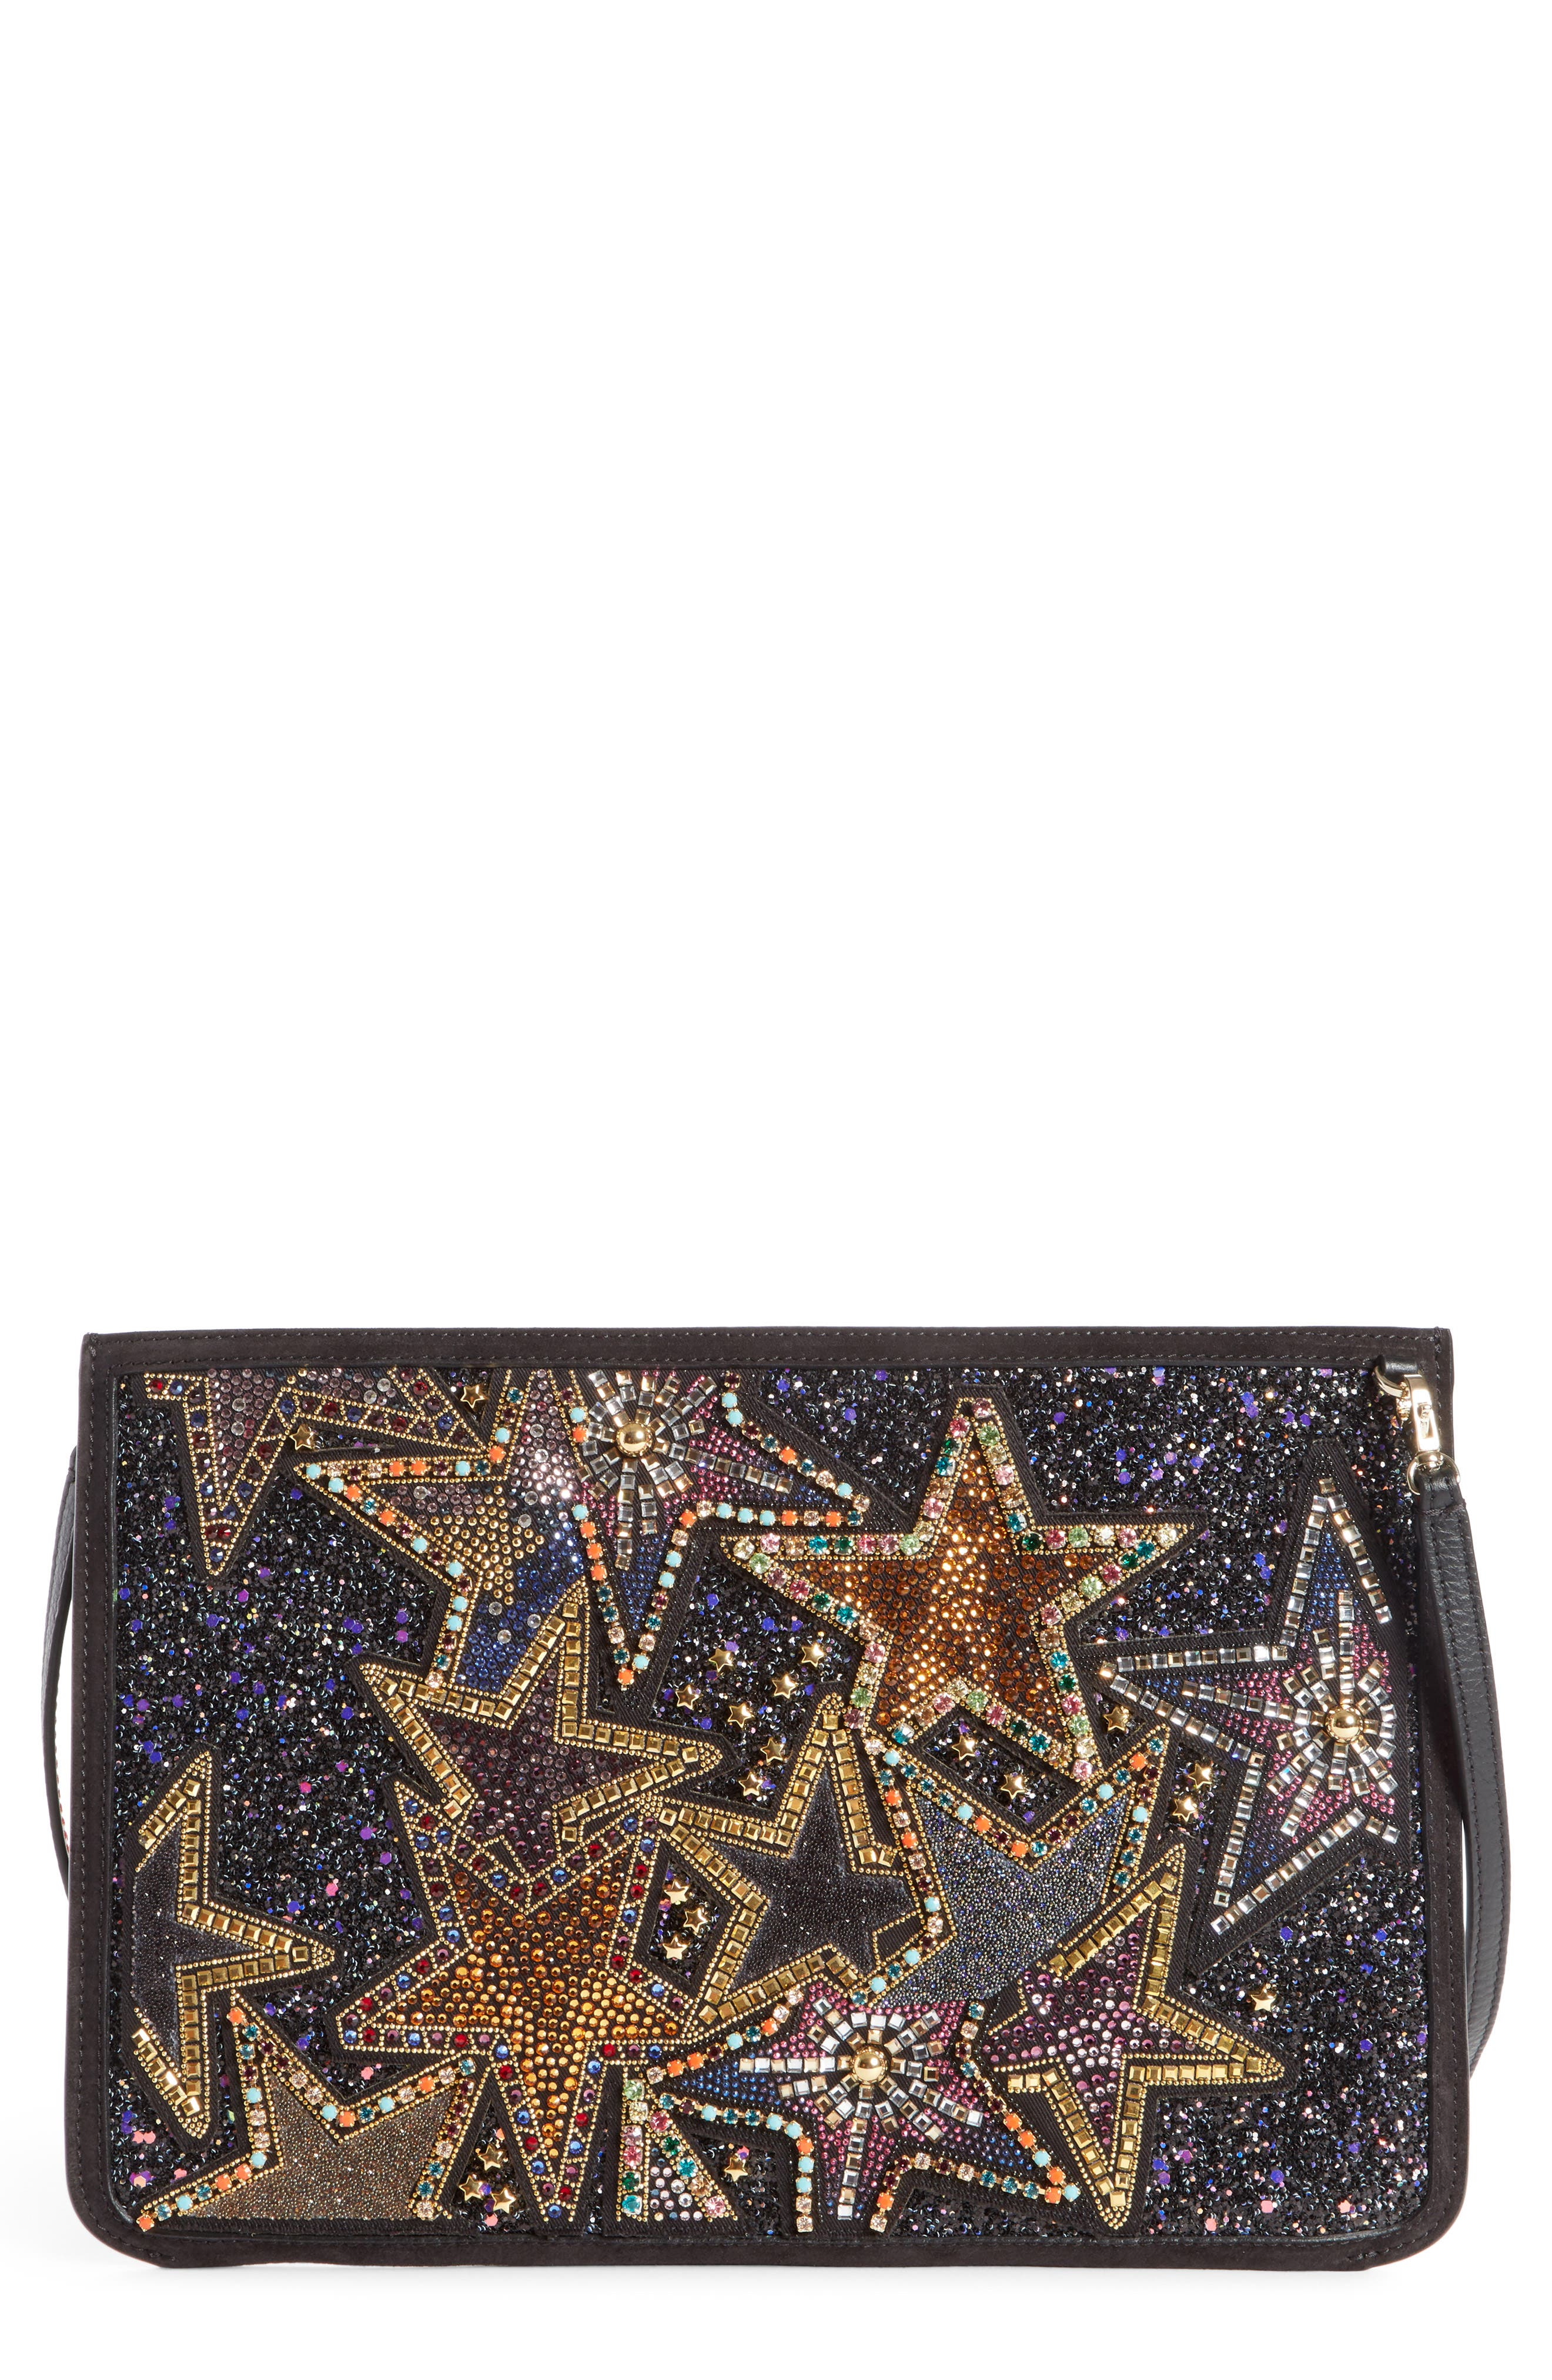 Christian Louboutin Loubiclutch Glitter Stars Leather Clutch